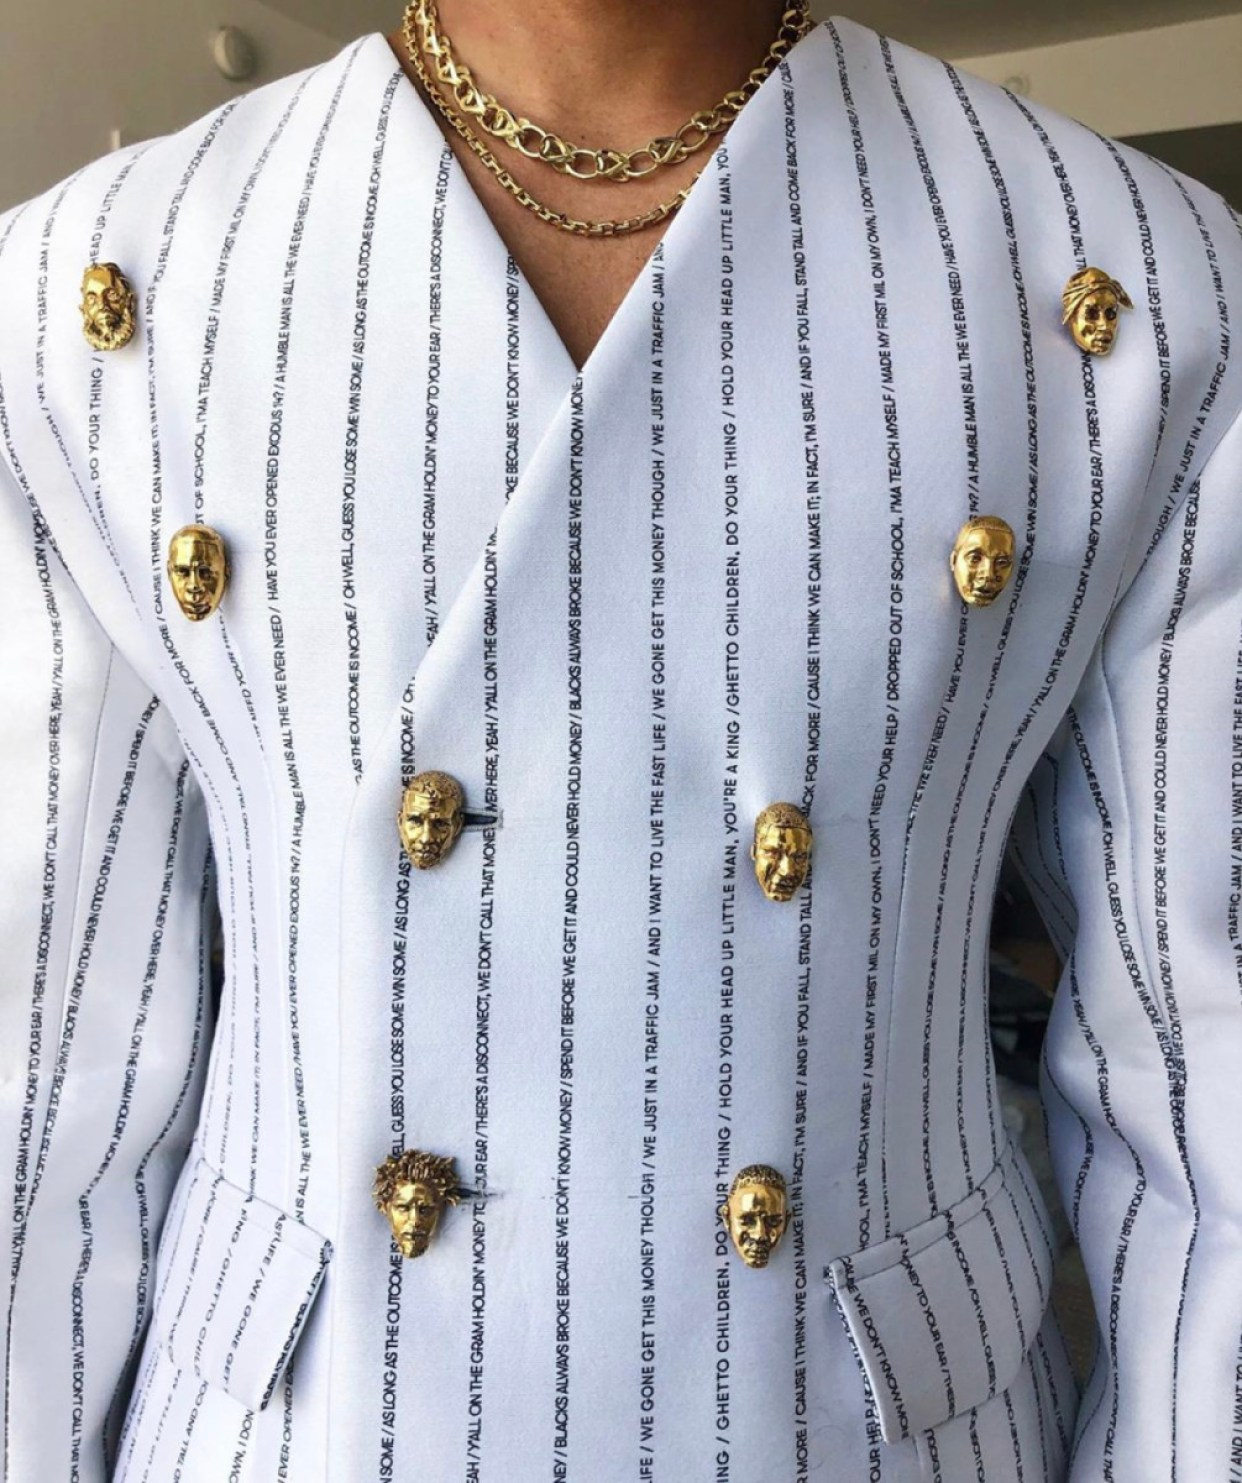 Details on Lena Waithe's Pyer Moss Met Gala suit. Photo: Javed James